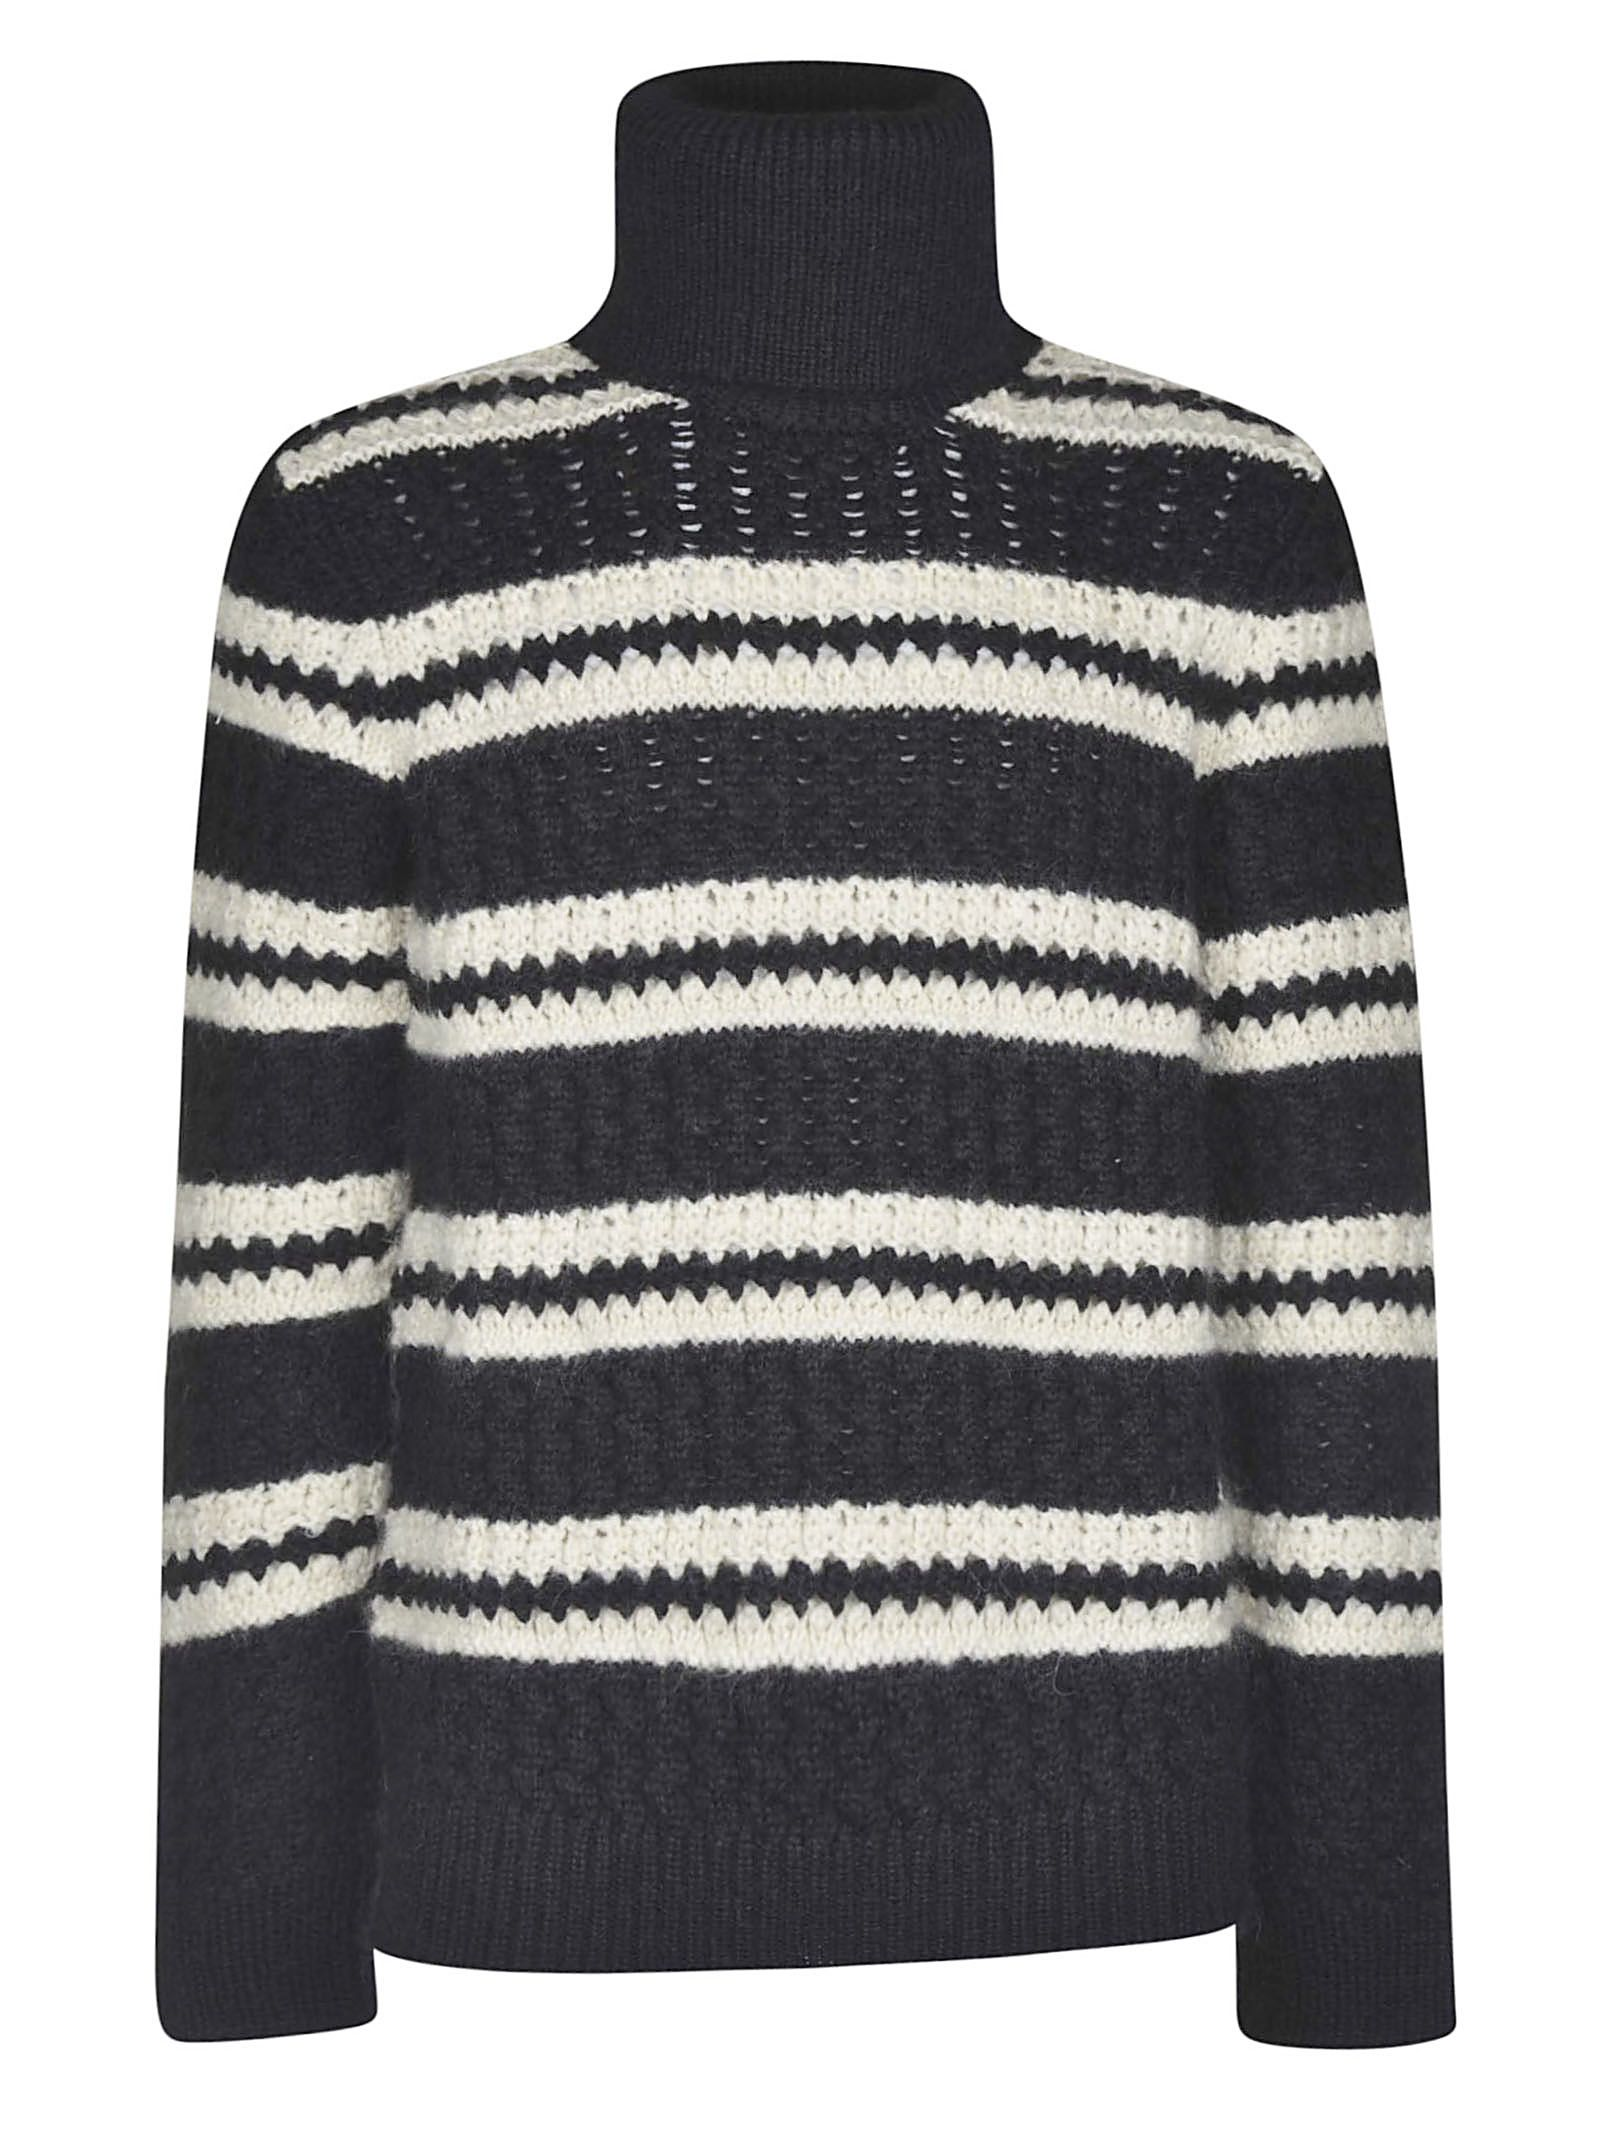 Saint Laurent Knitted Rolled Neck Sweater